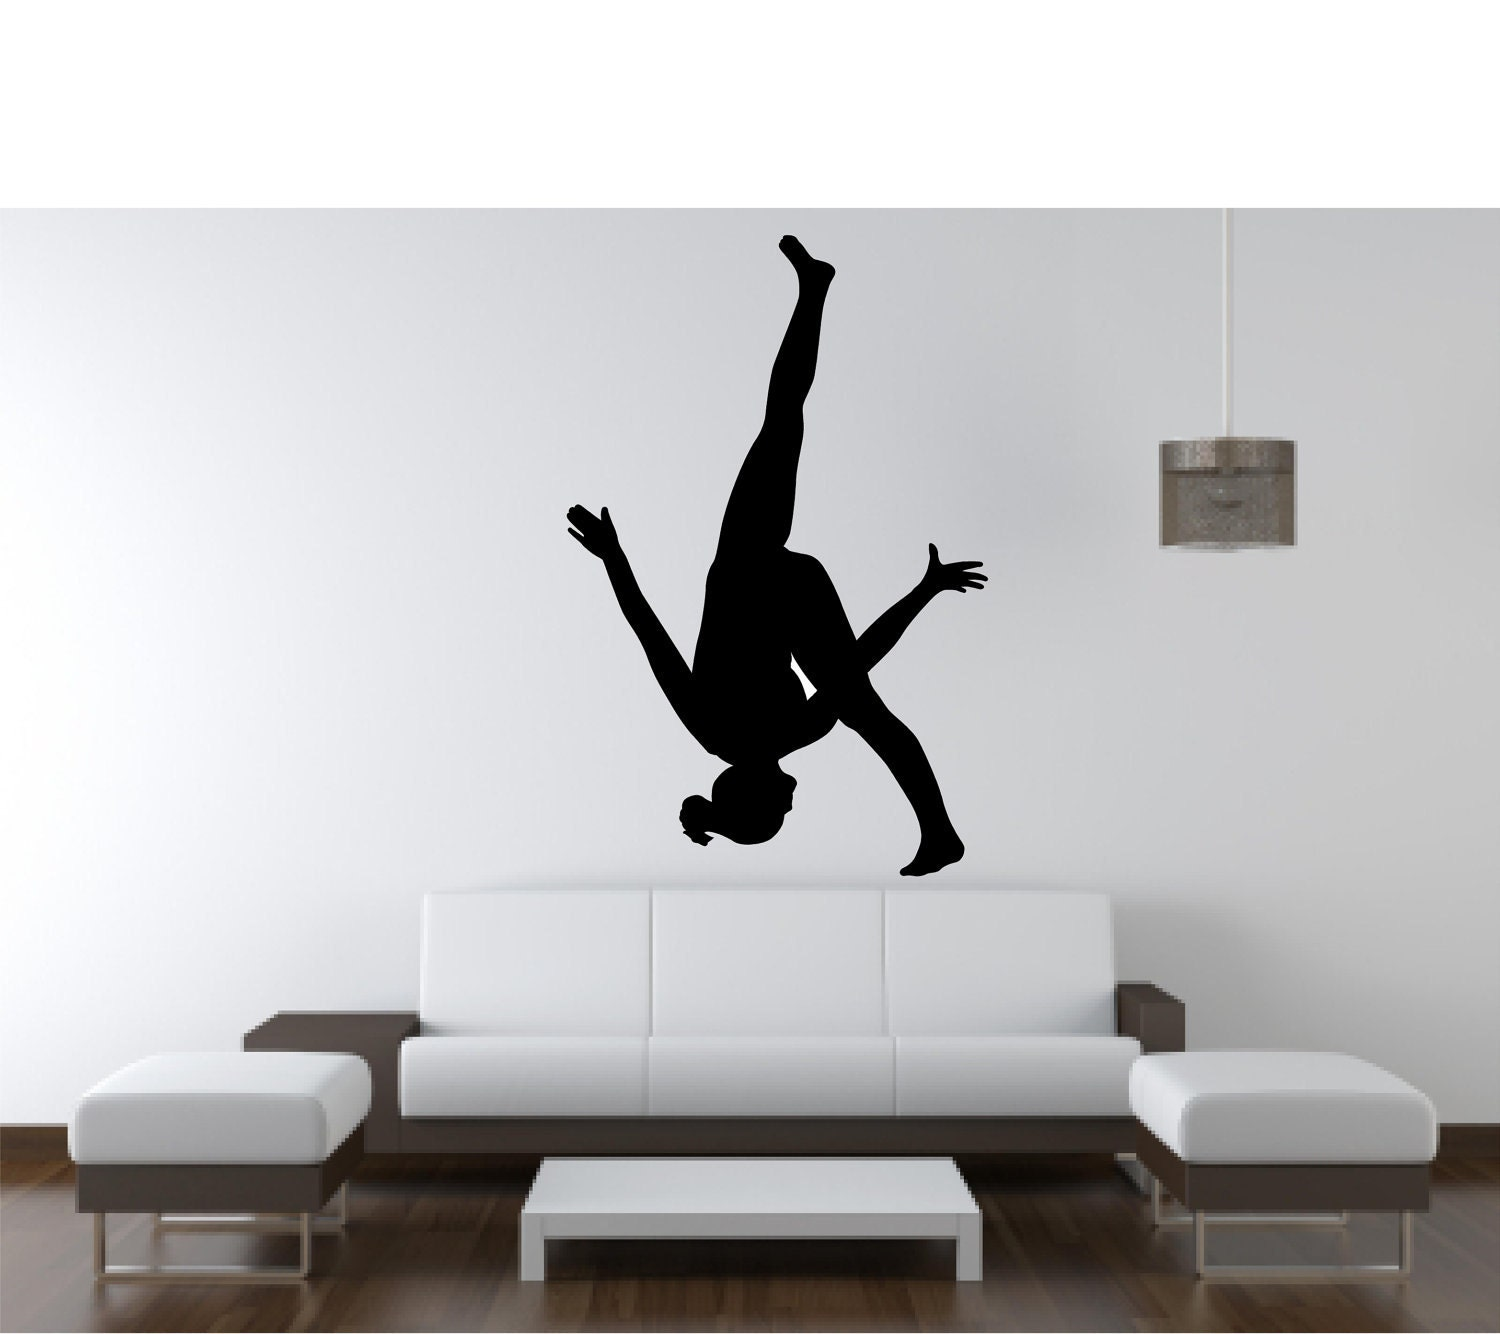 Vinyl wall decal silhouettegymnast 3 34h by for Gymnastics wall decals